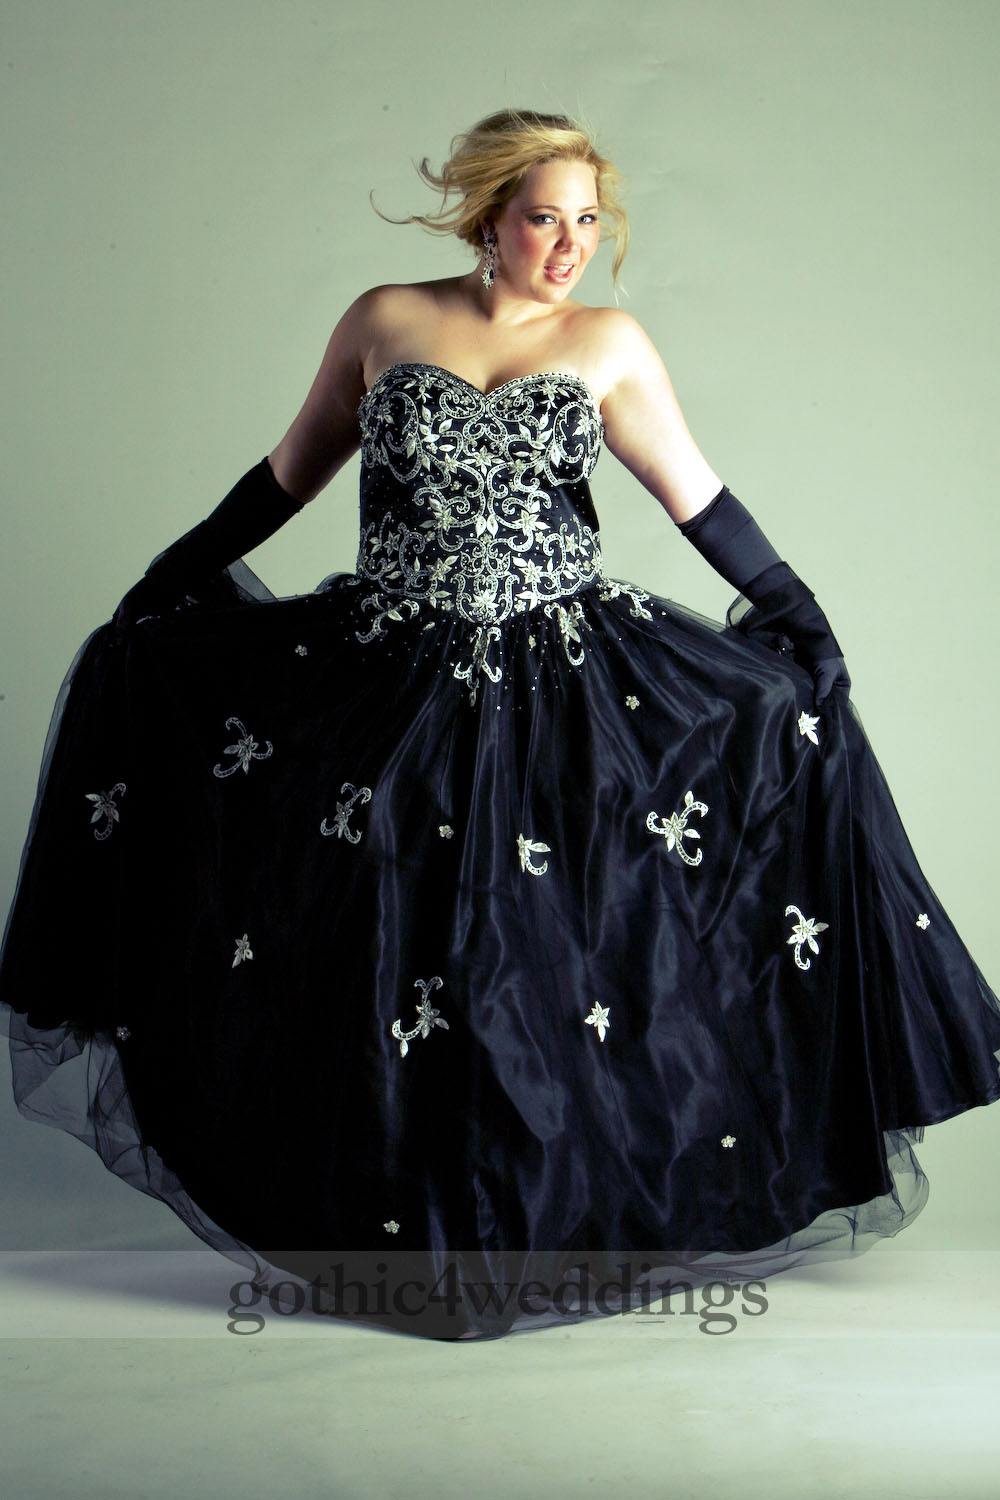 Plus Size Goth Prom Dresses 106